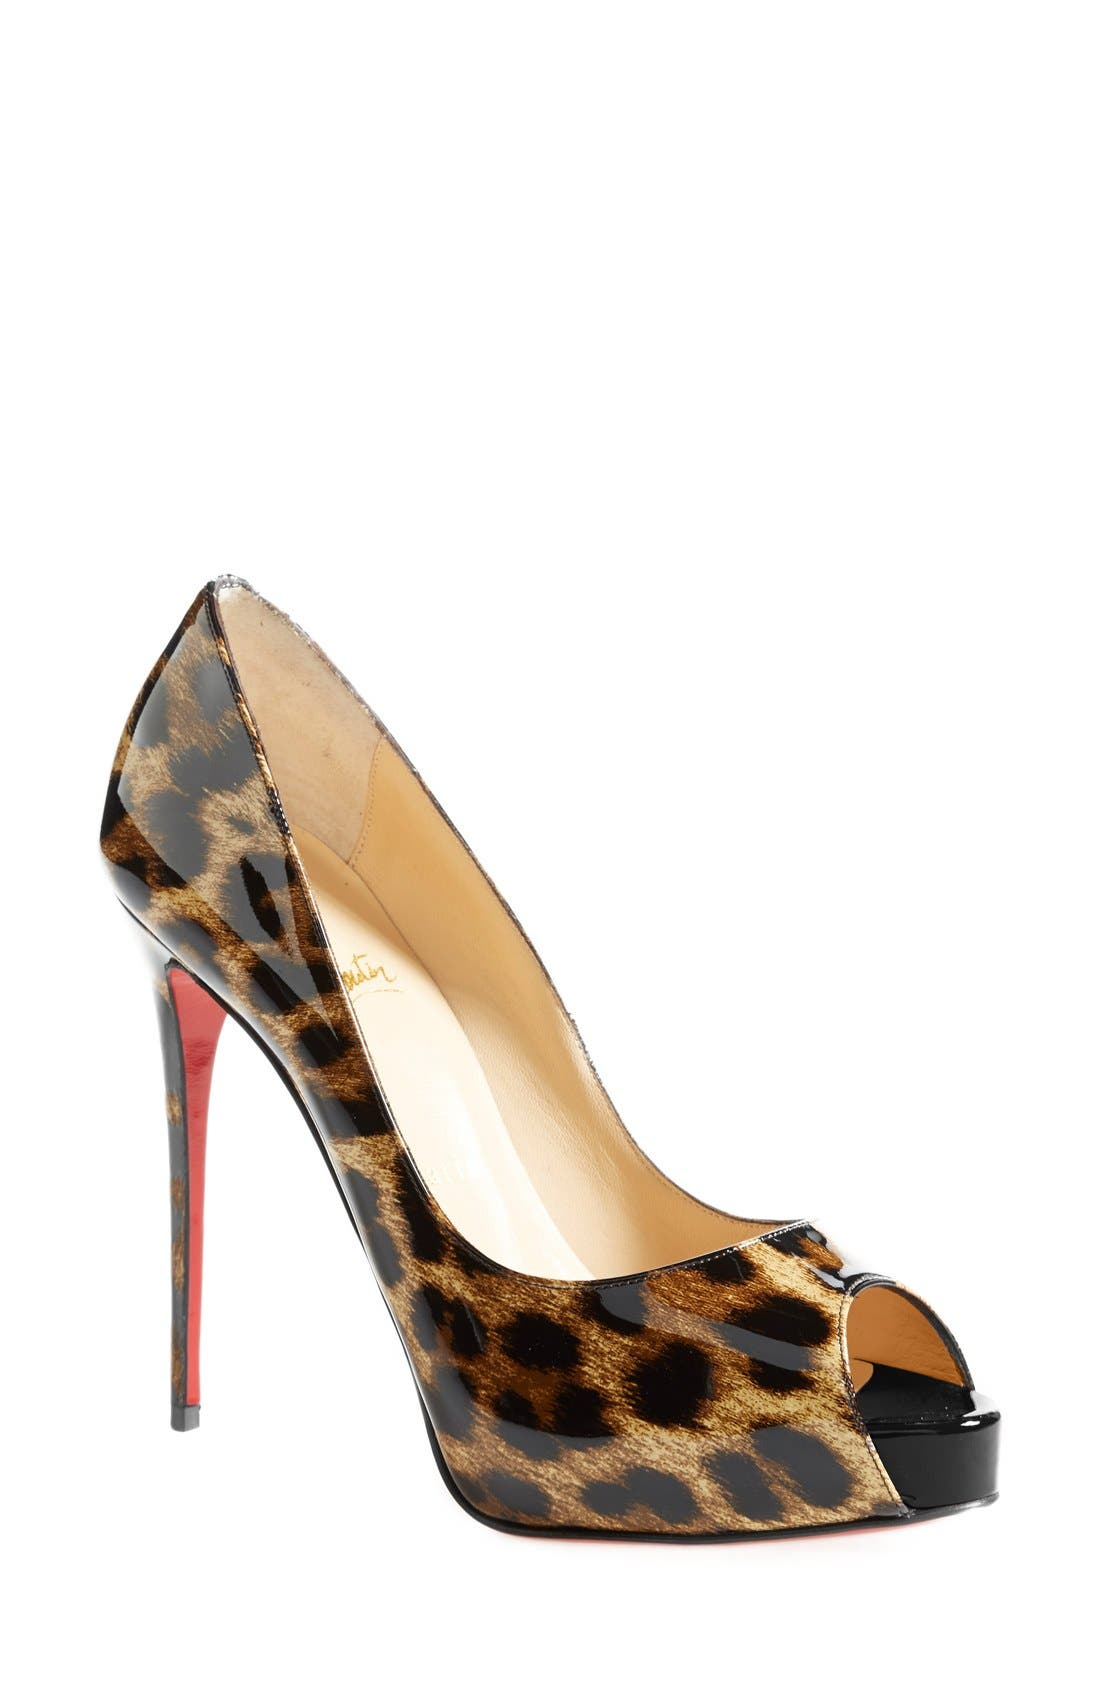 Alternate Image 1 Selected - Christian Louboutin 'New Very Prive' Pump